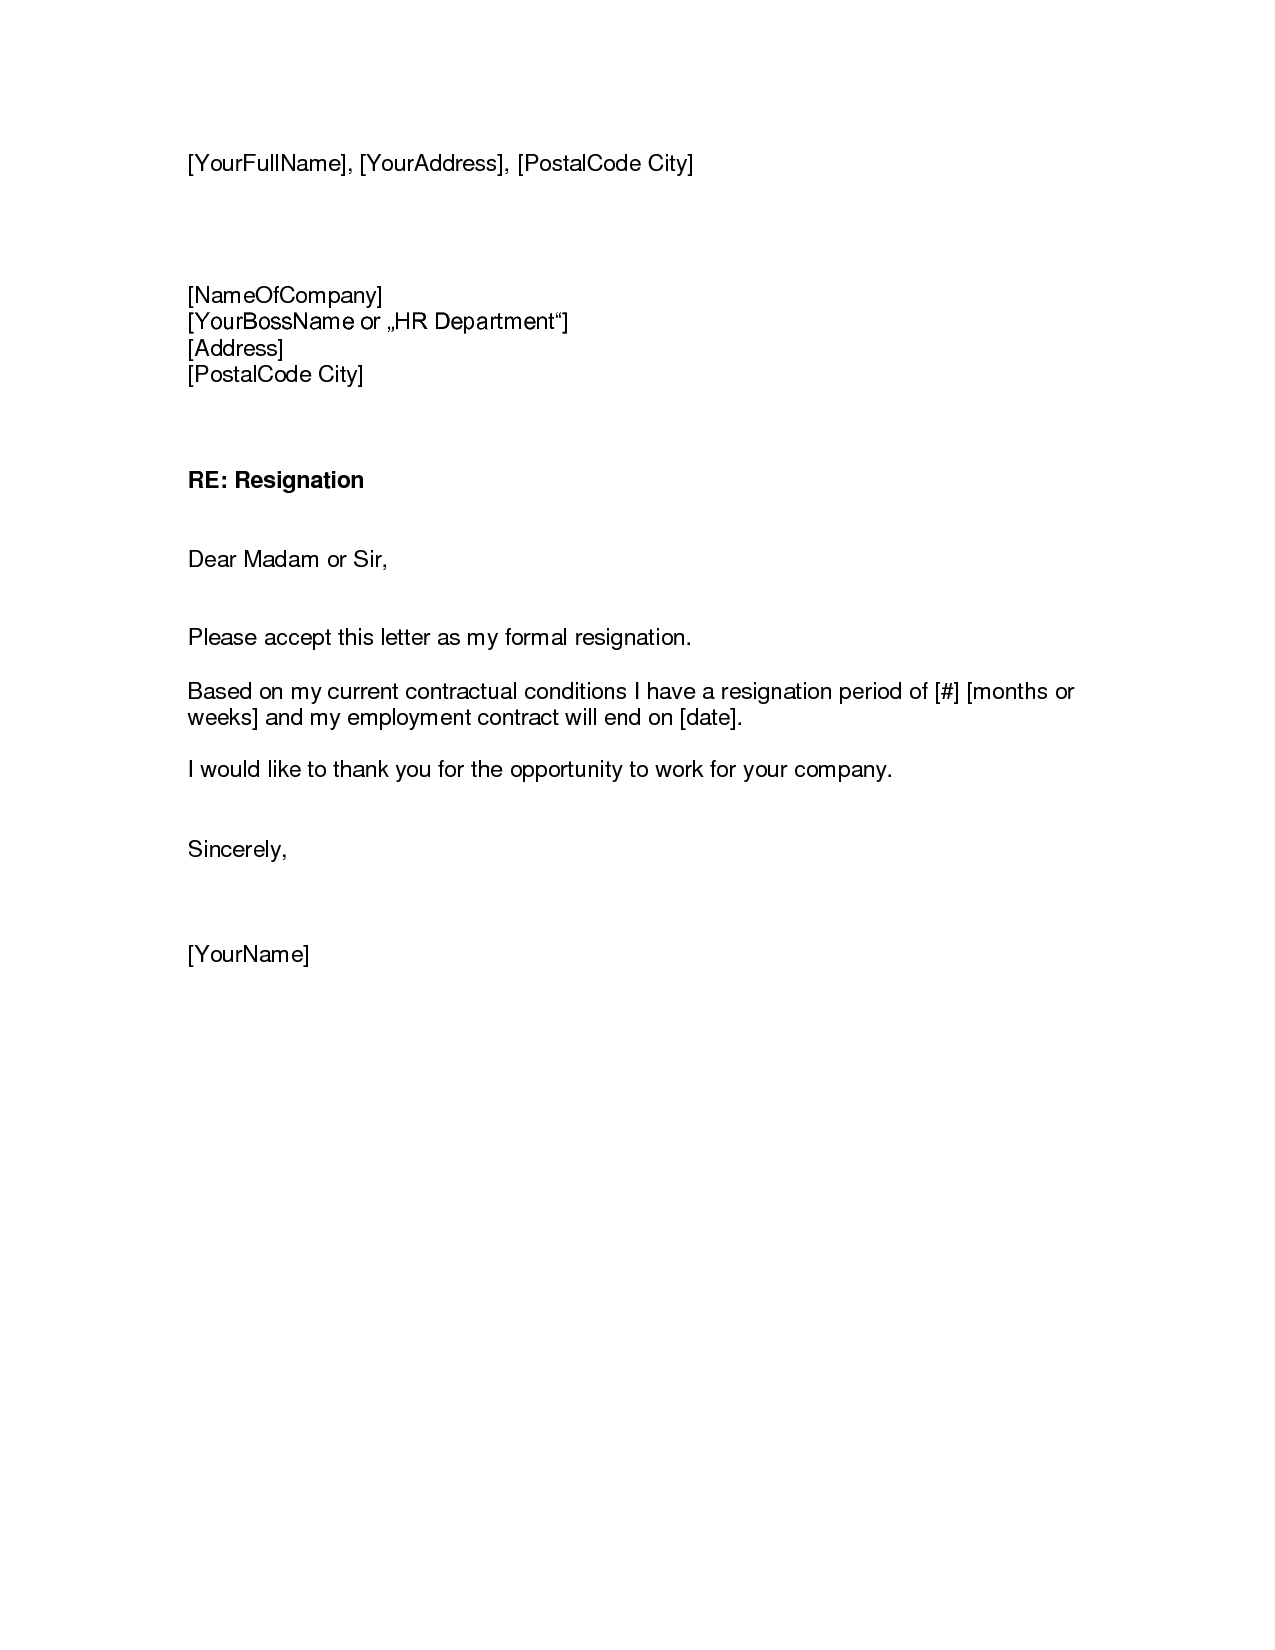 Free download resignation letterwriting a letter of resignation free download resignation letterwriting a letter of resignation email letter sample expocarfo